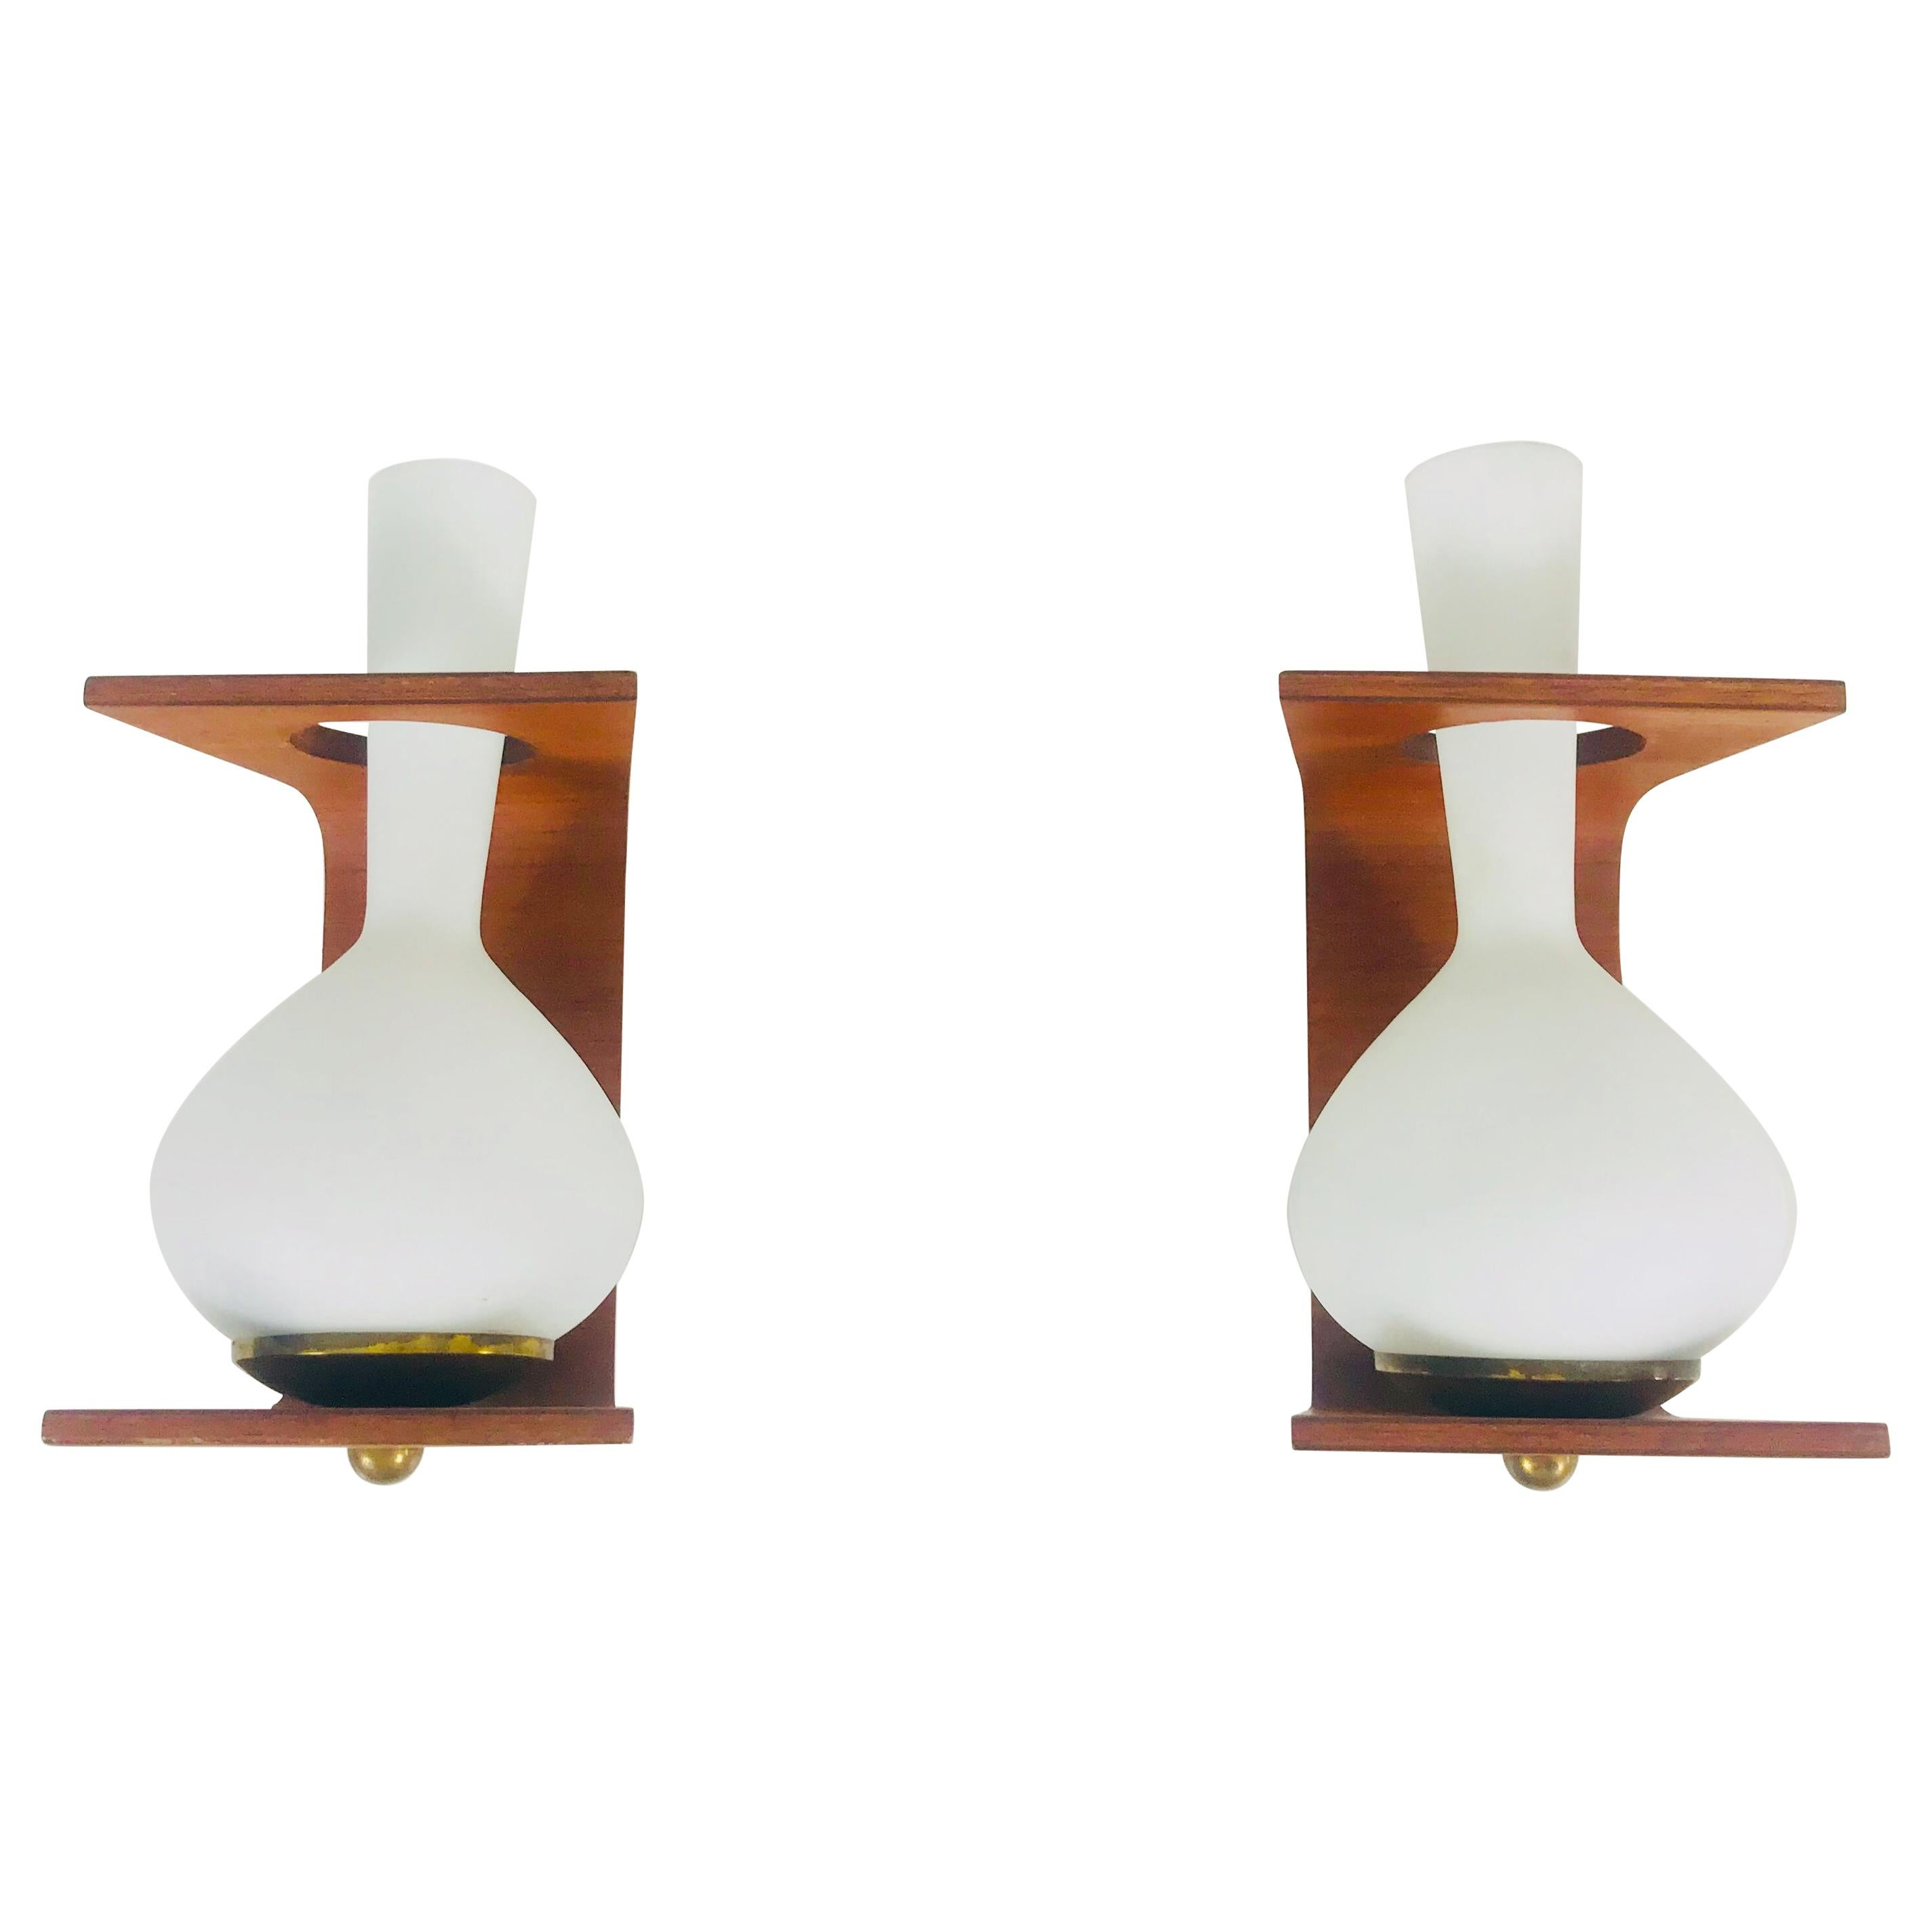 Pair of Midcentury Teak and Opaque Glass Wall Lamps Stilnovo Attributed, Italy